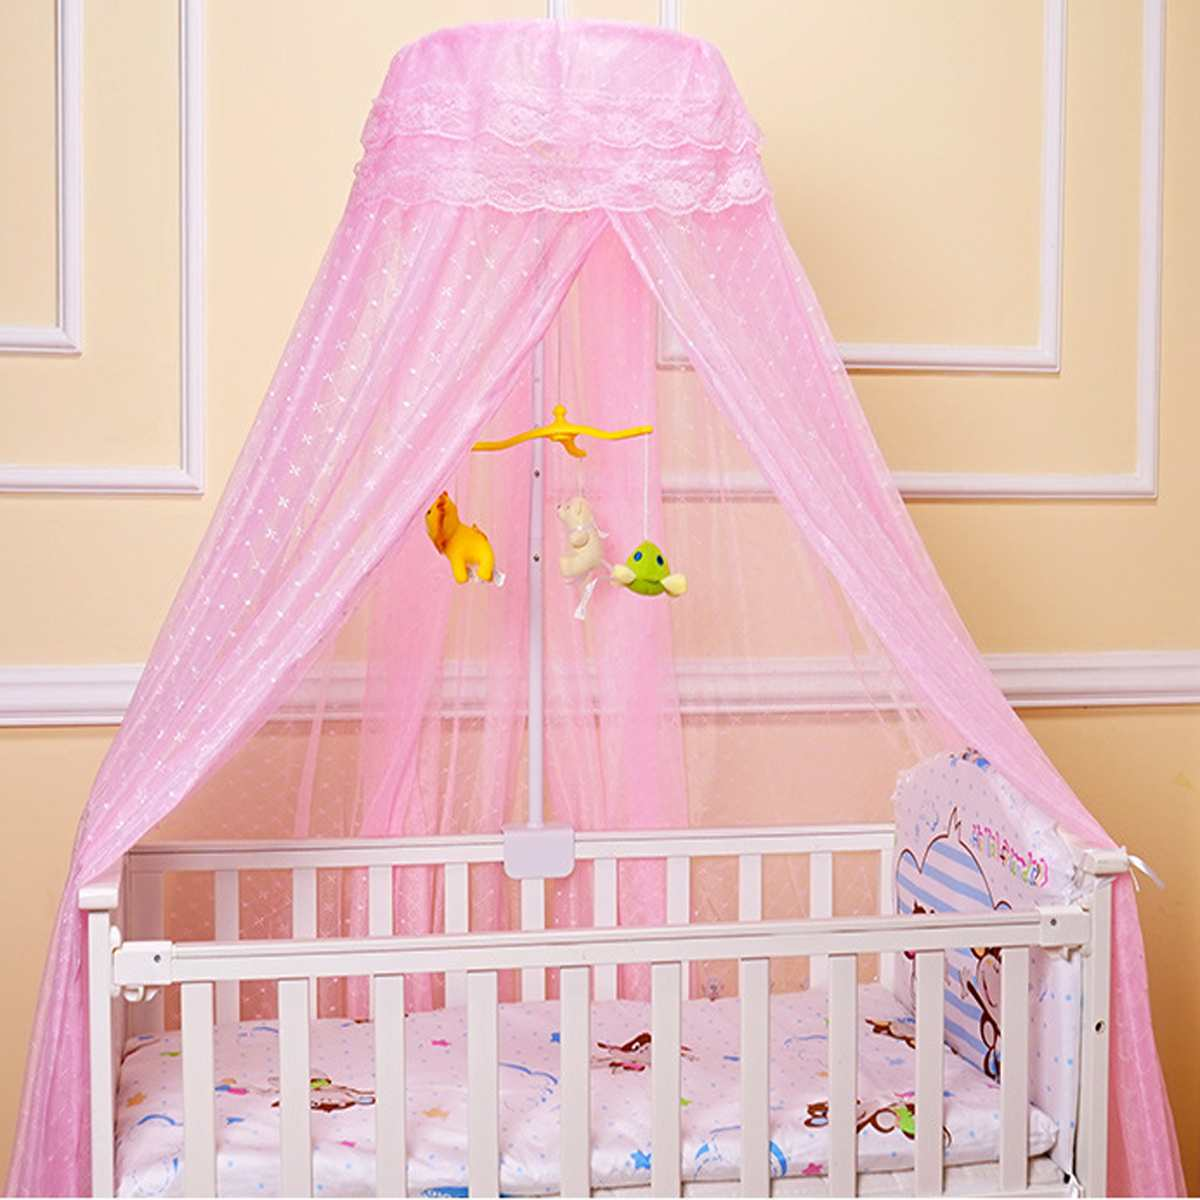 Baby Netting Canopy Infant Mosquito Net Insect Mosquito Net for Crib Bed Canopy Mosquito Netting Crib Canopy With Iron Stand